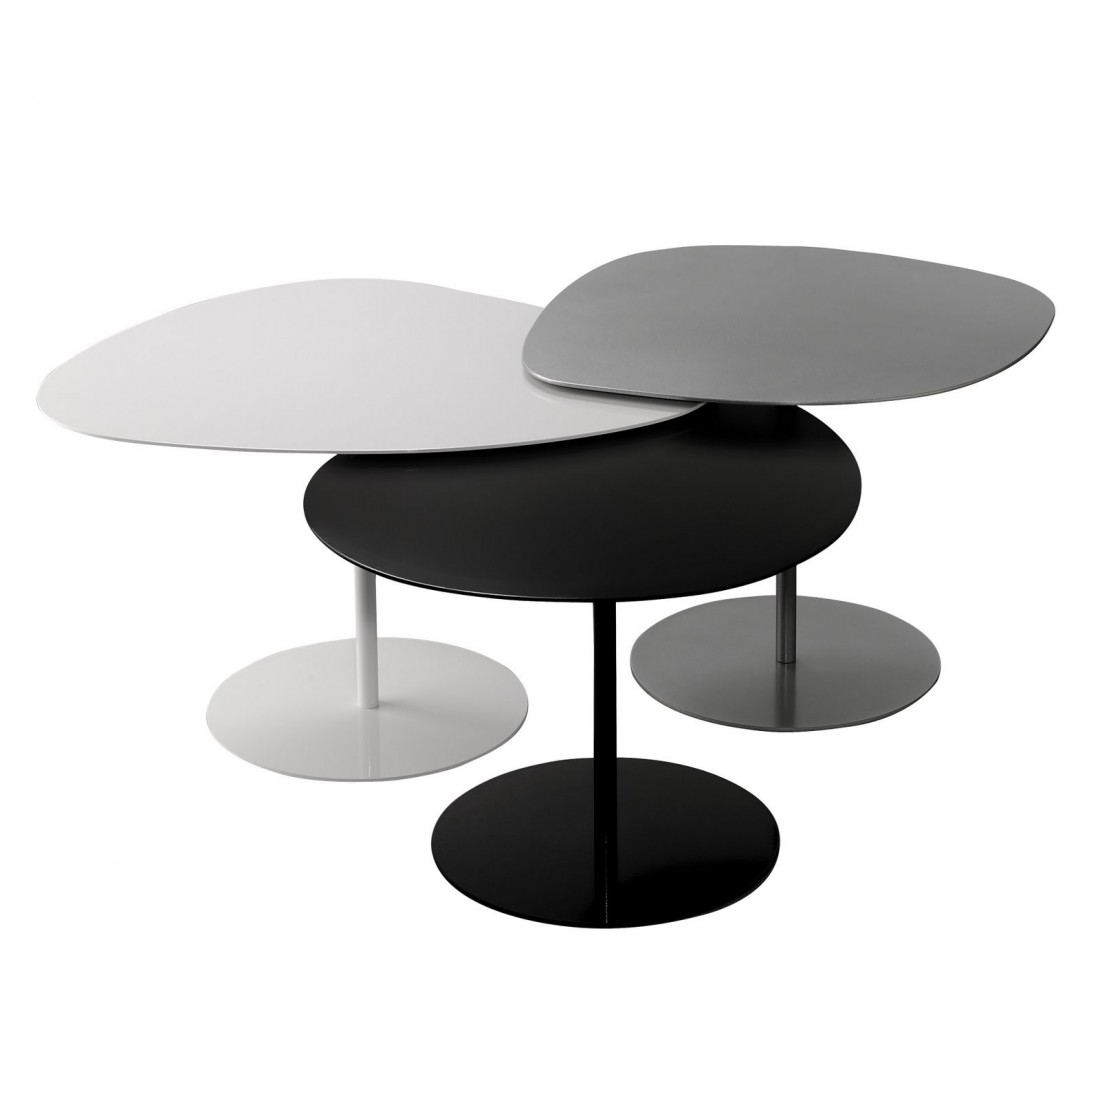 Tables basse galets en aluminium lot de 3 mati re grise for Table basse en aluminium